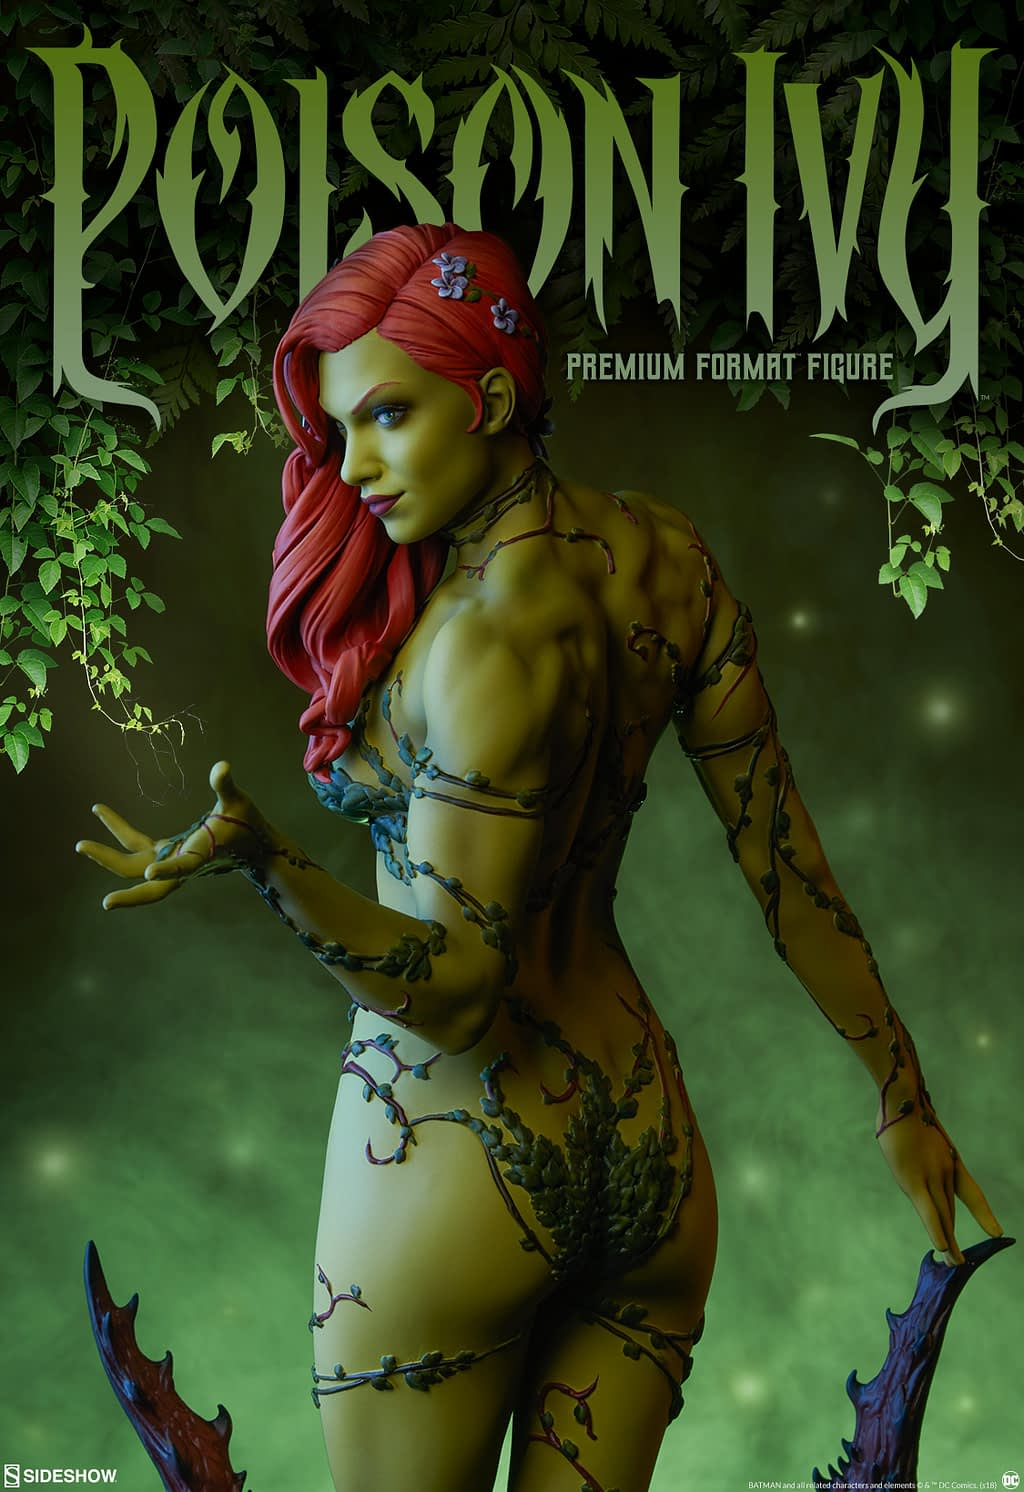 Poison Ivy Premium Format Figure From Sideshow Collectibles Reveal Image